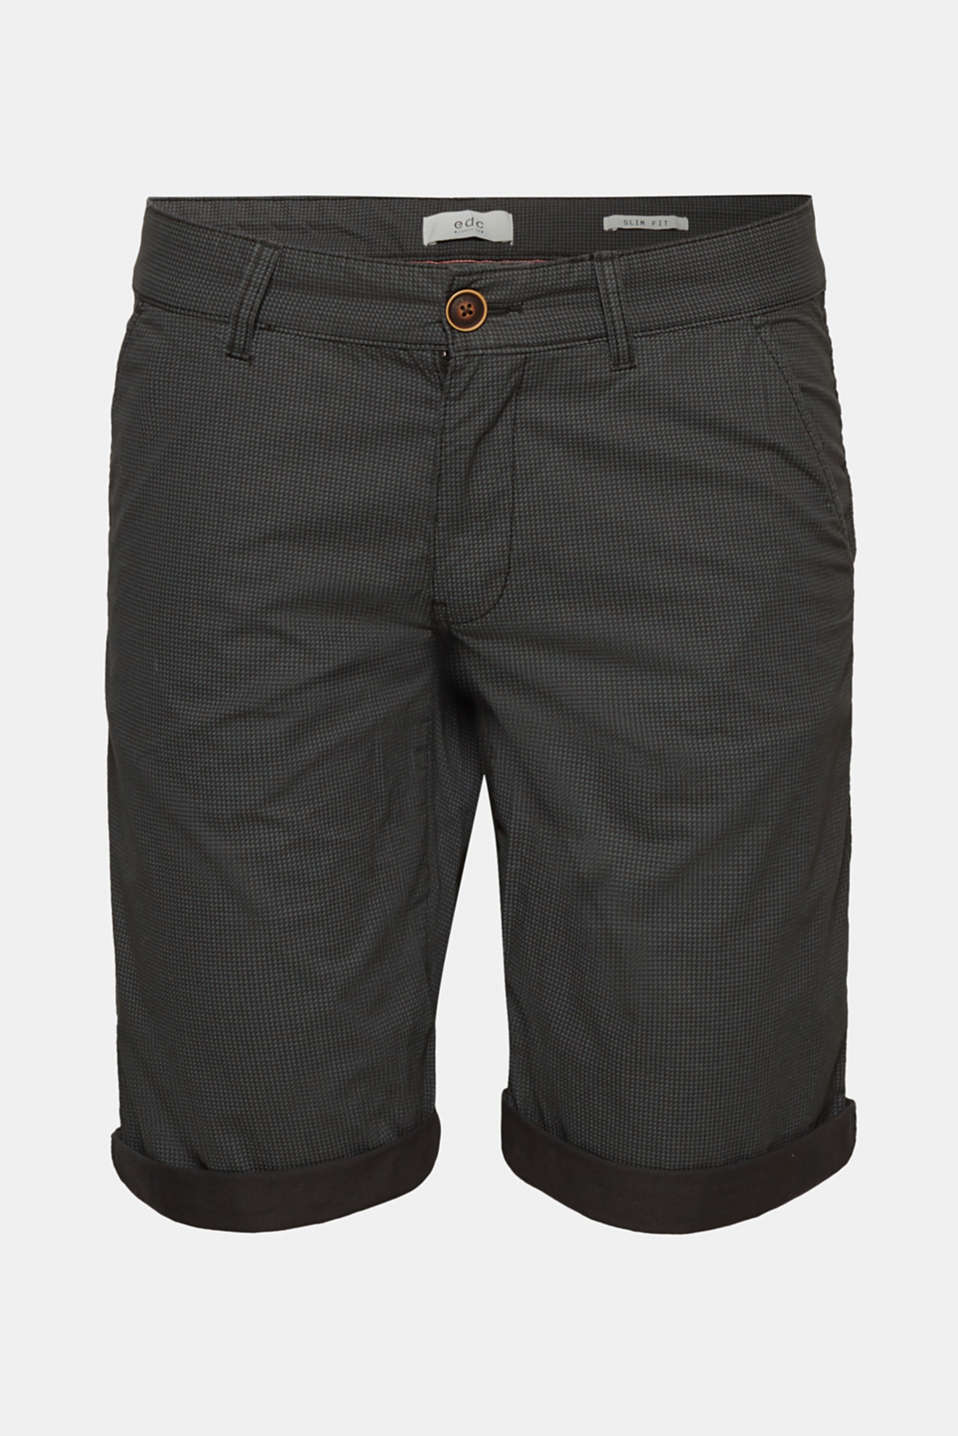 Shorts woven Slim fit, ANTHRACITE, detail image number 7